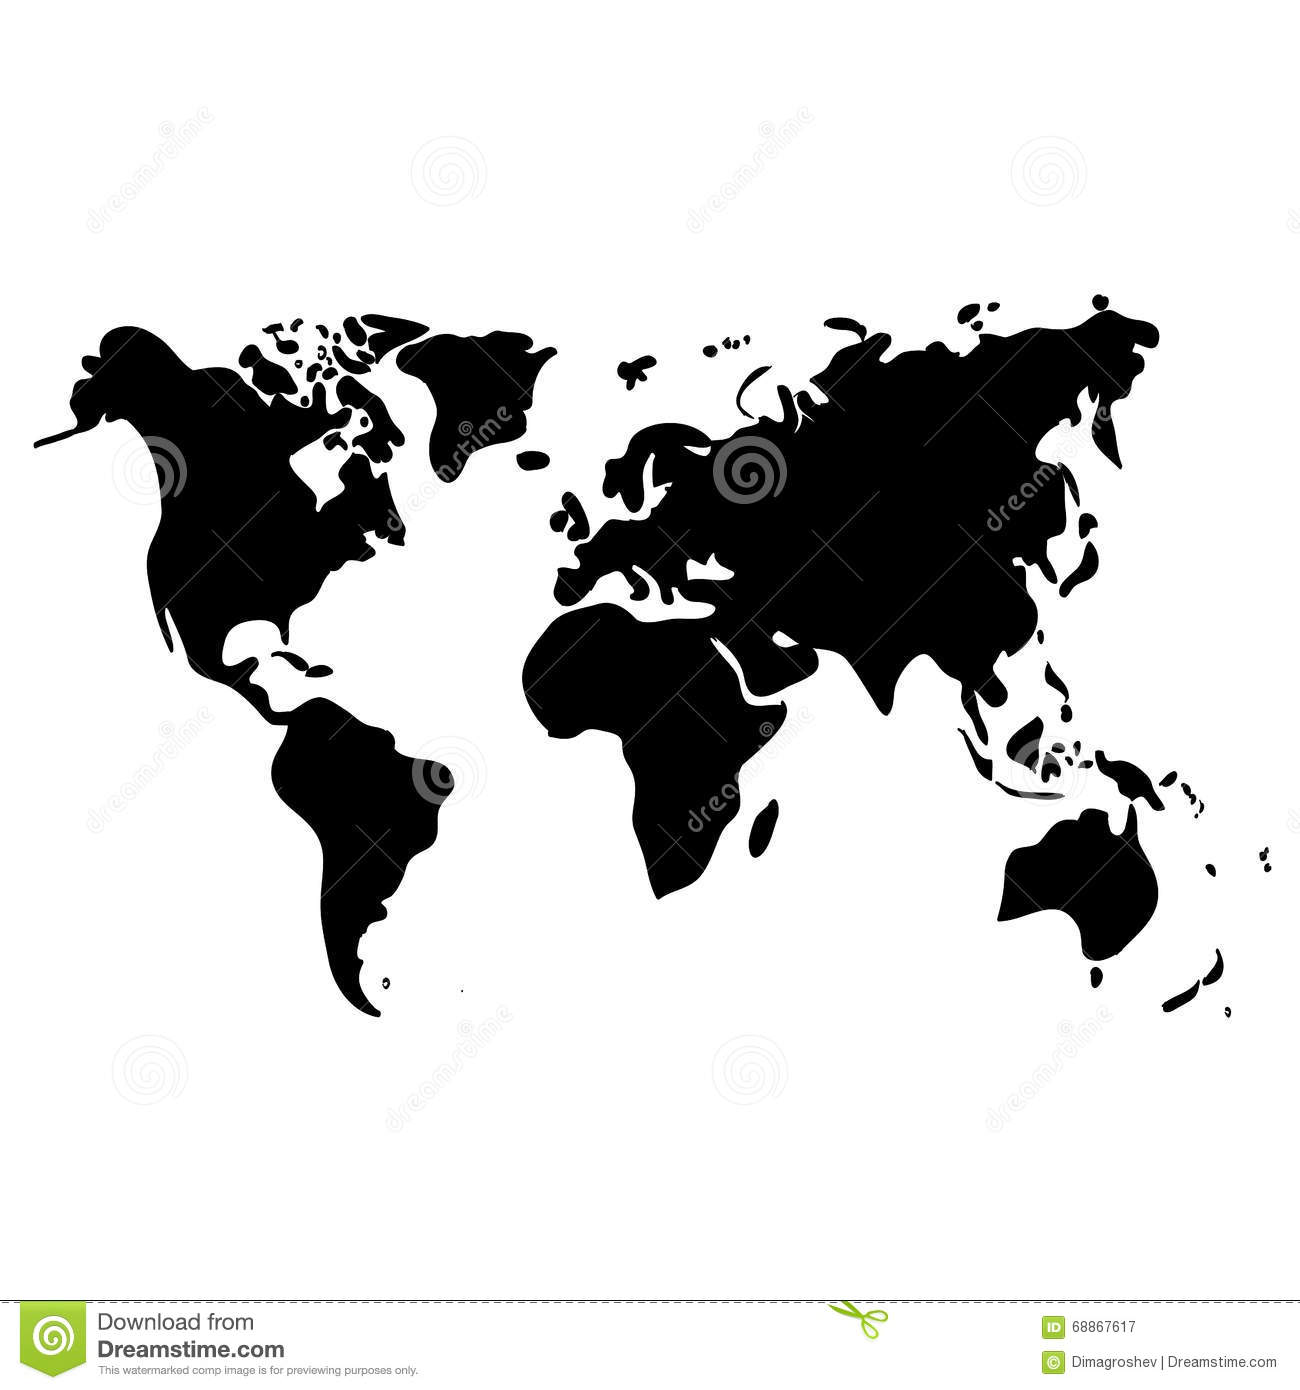 Time Zone Map Black And White: Vector World Map On White Background, Black Illustration